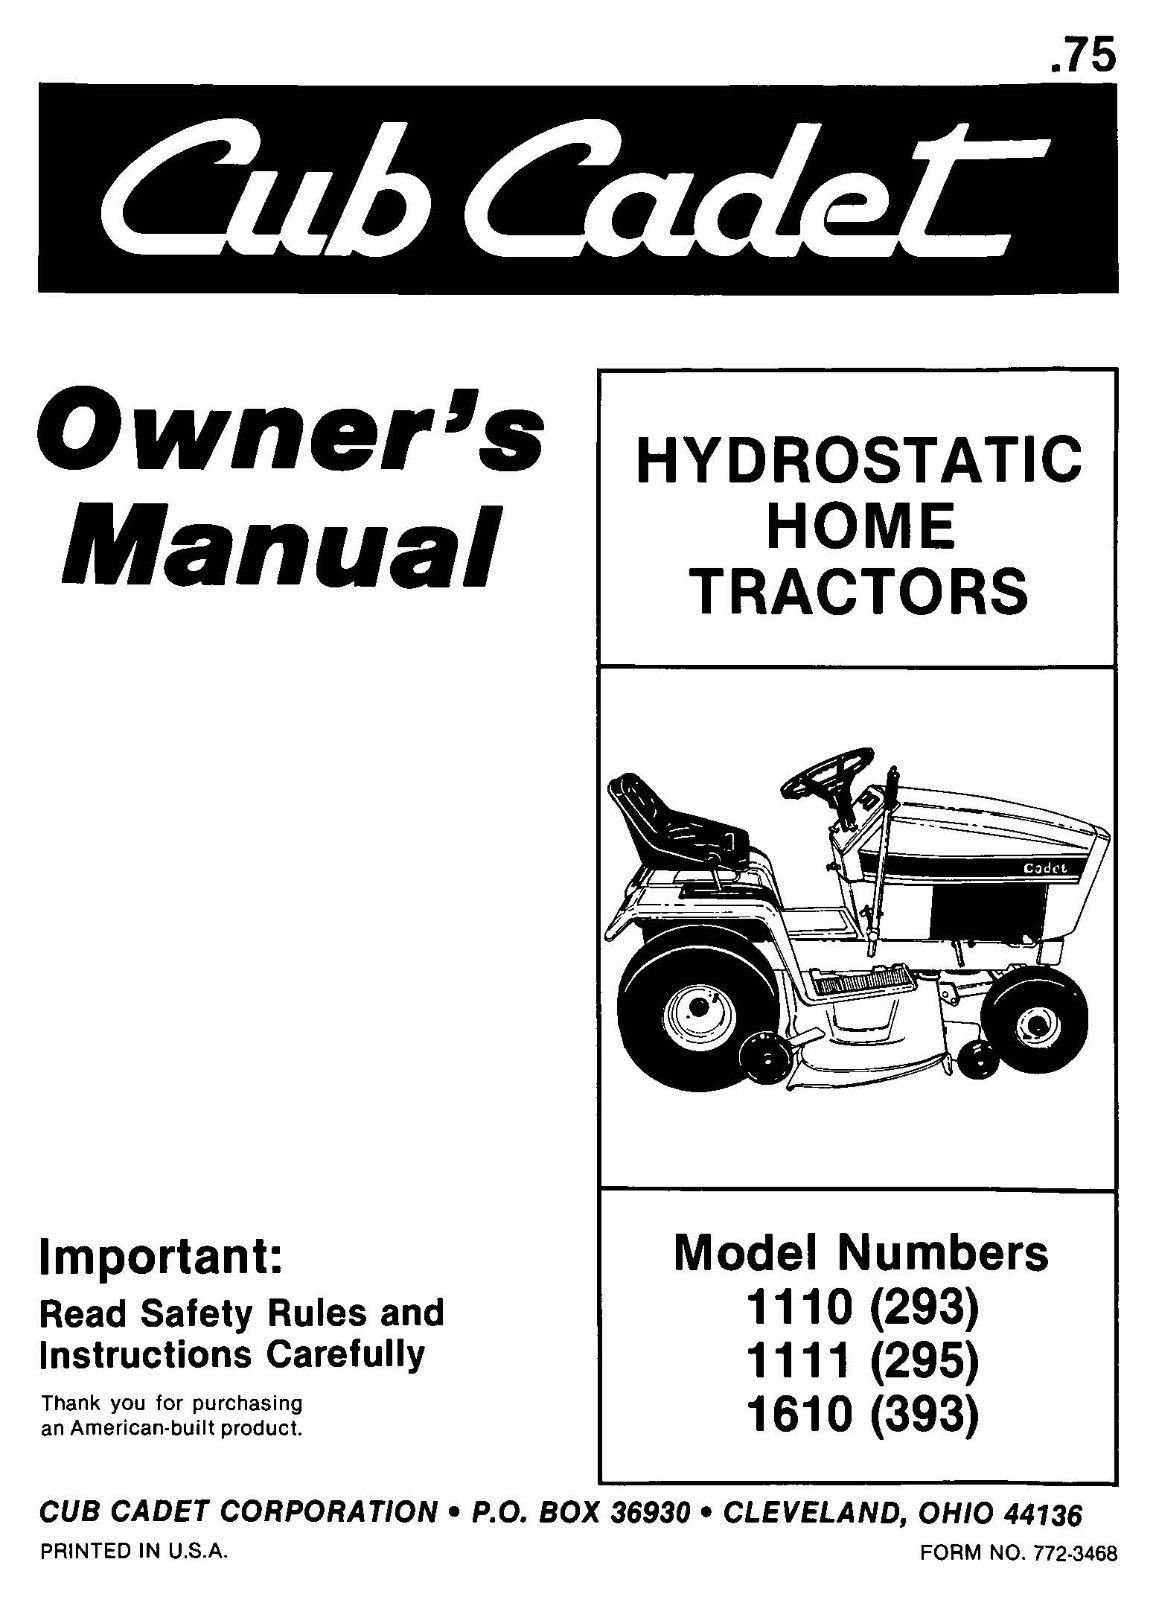 Cub Cadet Lawn Tractor Owners Manual Model No. 1110-1111-1610